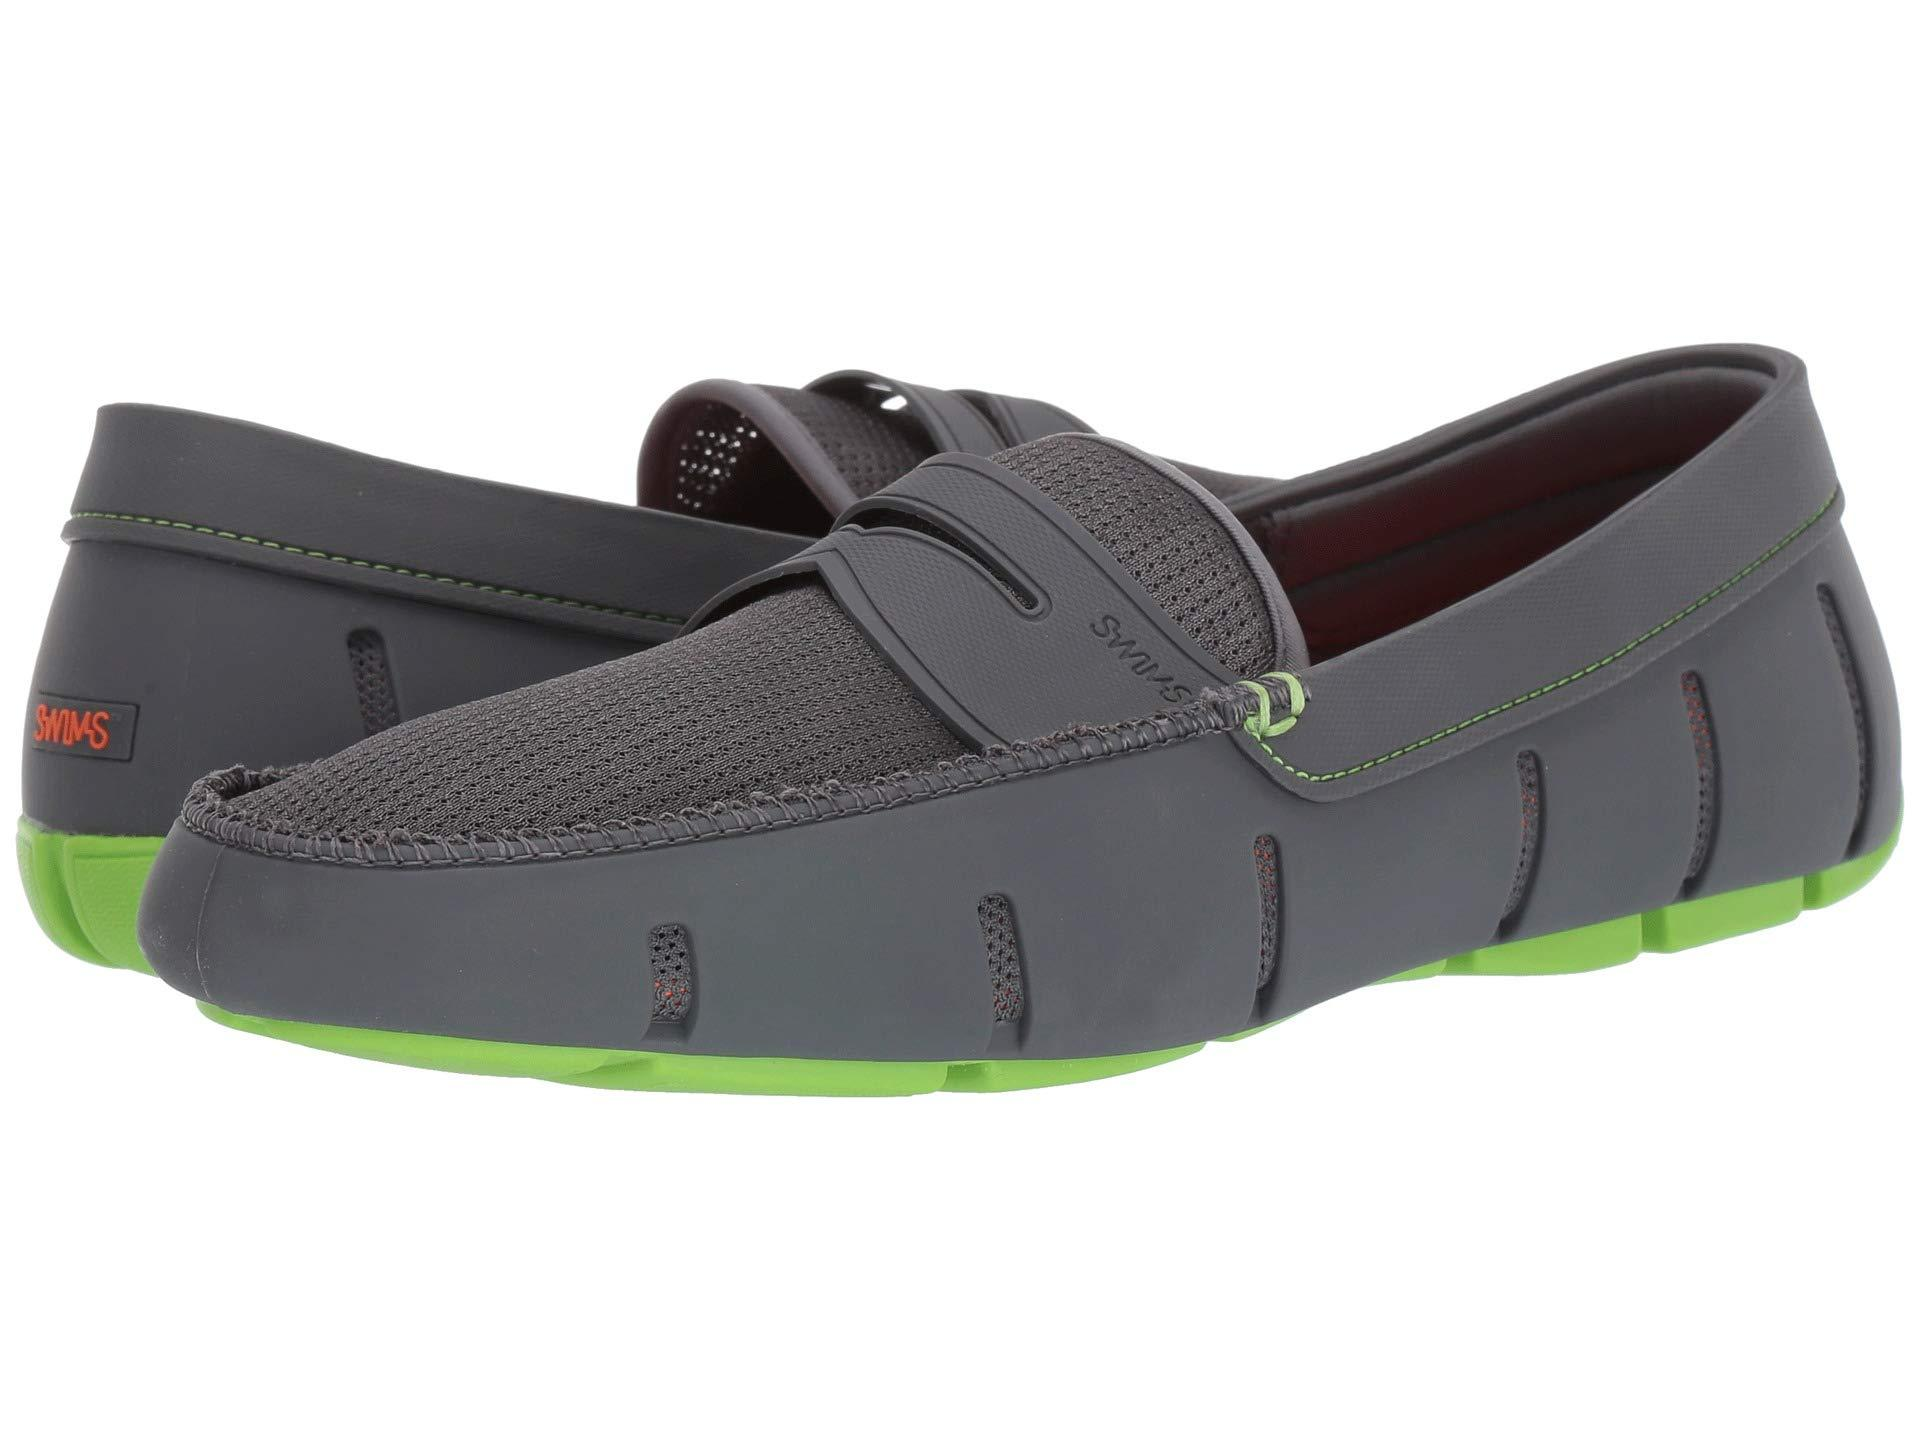 Swims Penny Loafer (gray/acid Green) Men's Shoes for Men ...